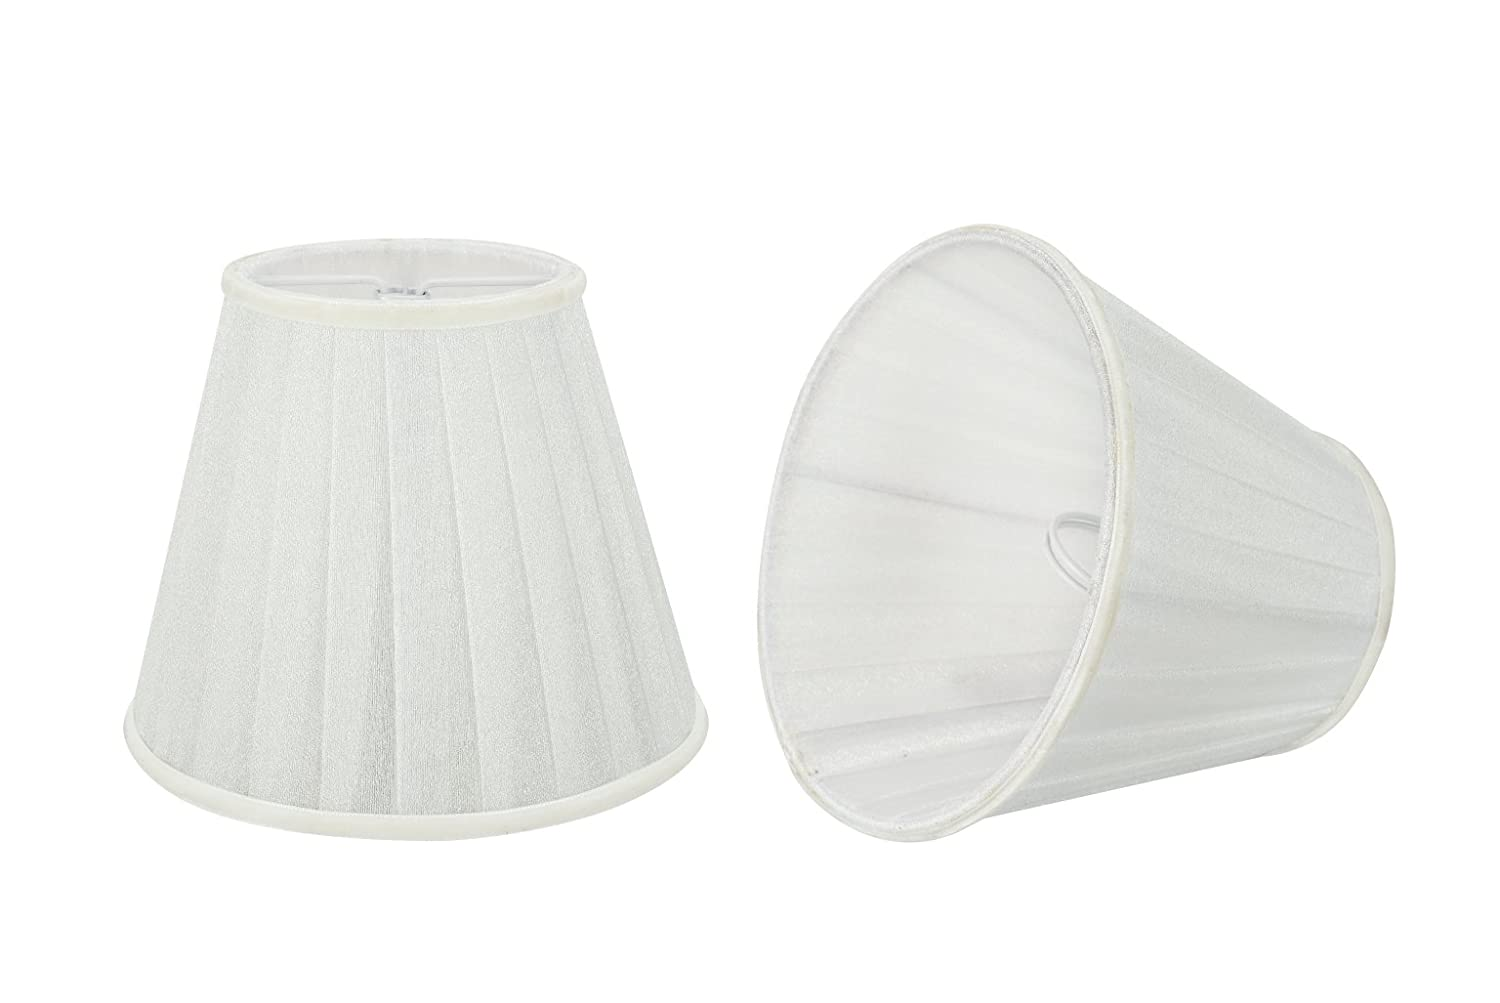 5 Bottom Width Aspen Creative 33112-5 Small Pleated Empire Shape Chandelier Clip-On Lamp Shade Set , Transitional Design in White 5 Pack 3 x 5 x 4 1//4